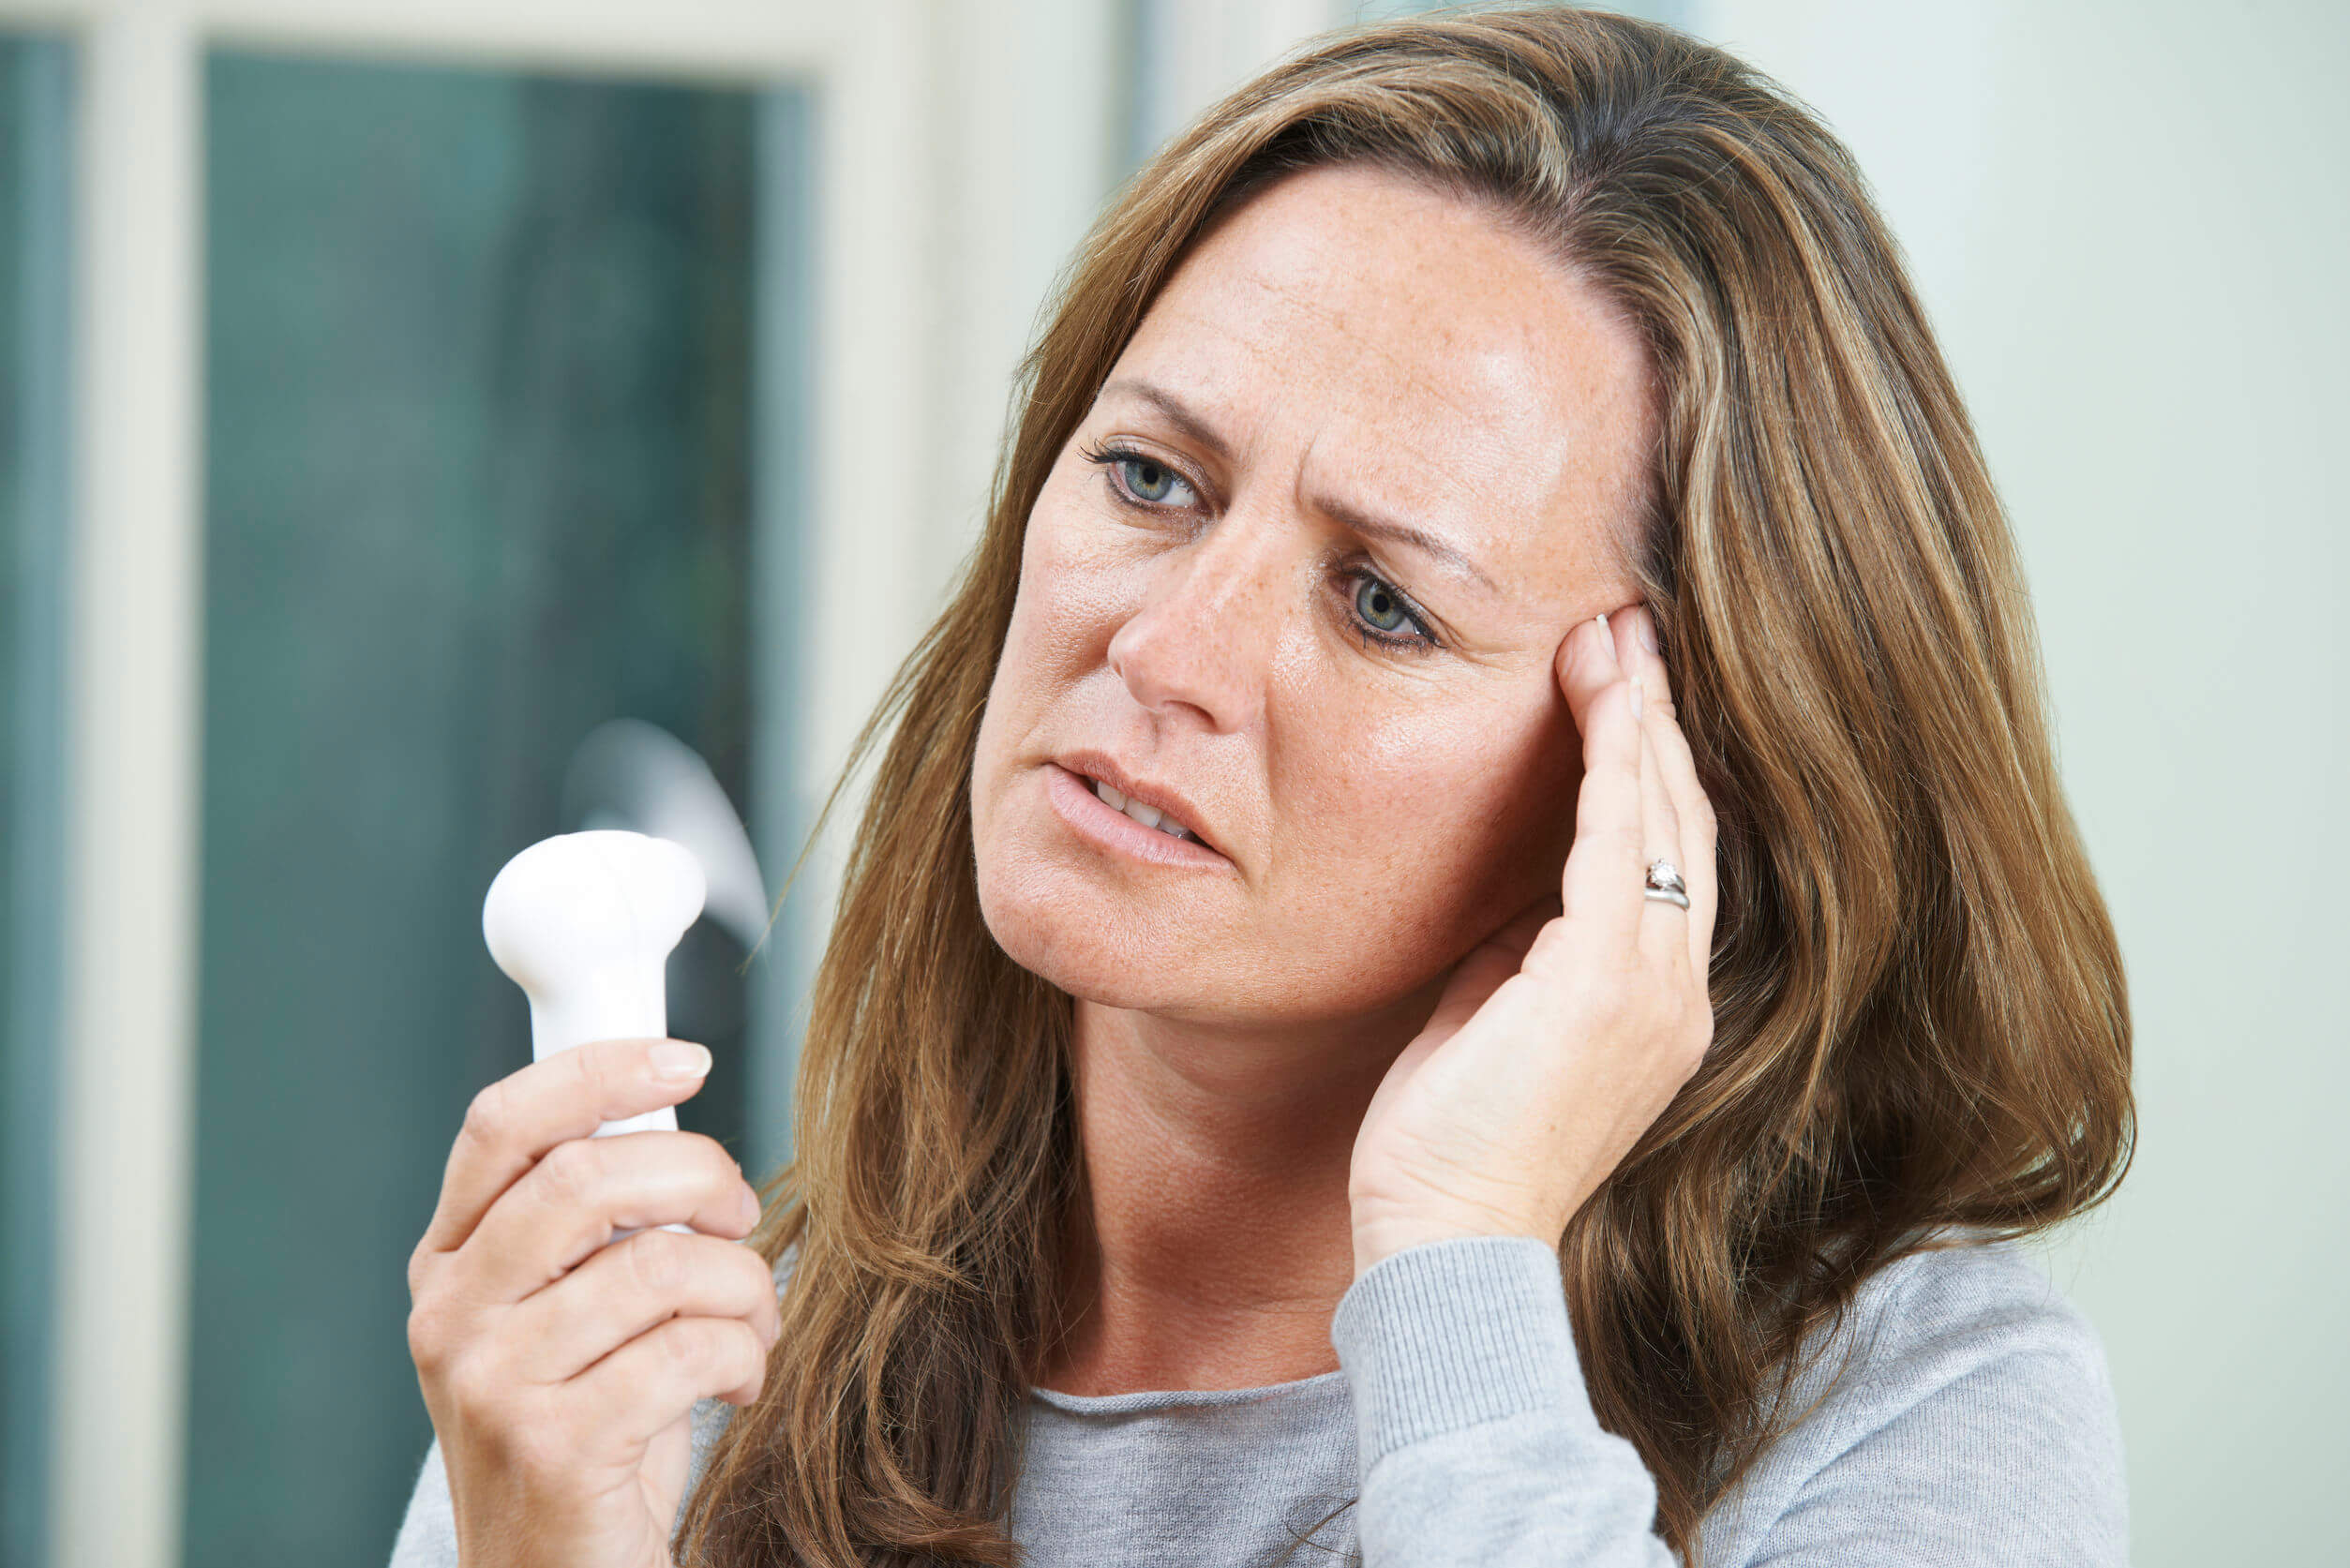 The causes and risk factors of menopause are natural